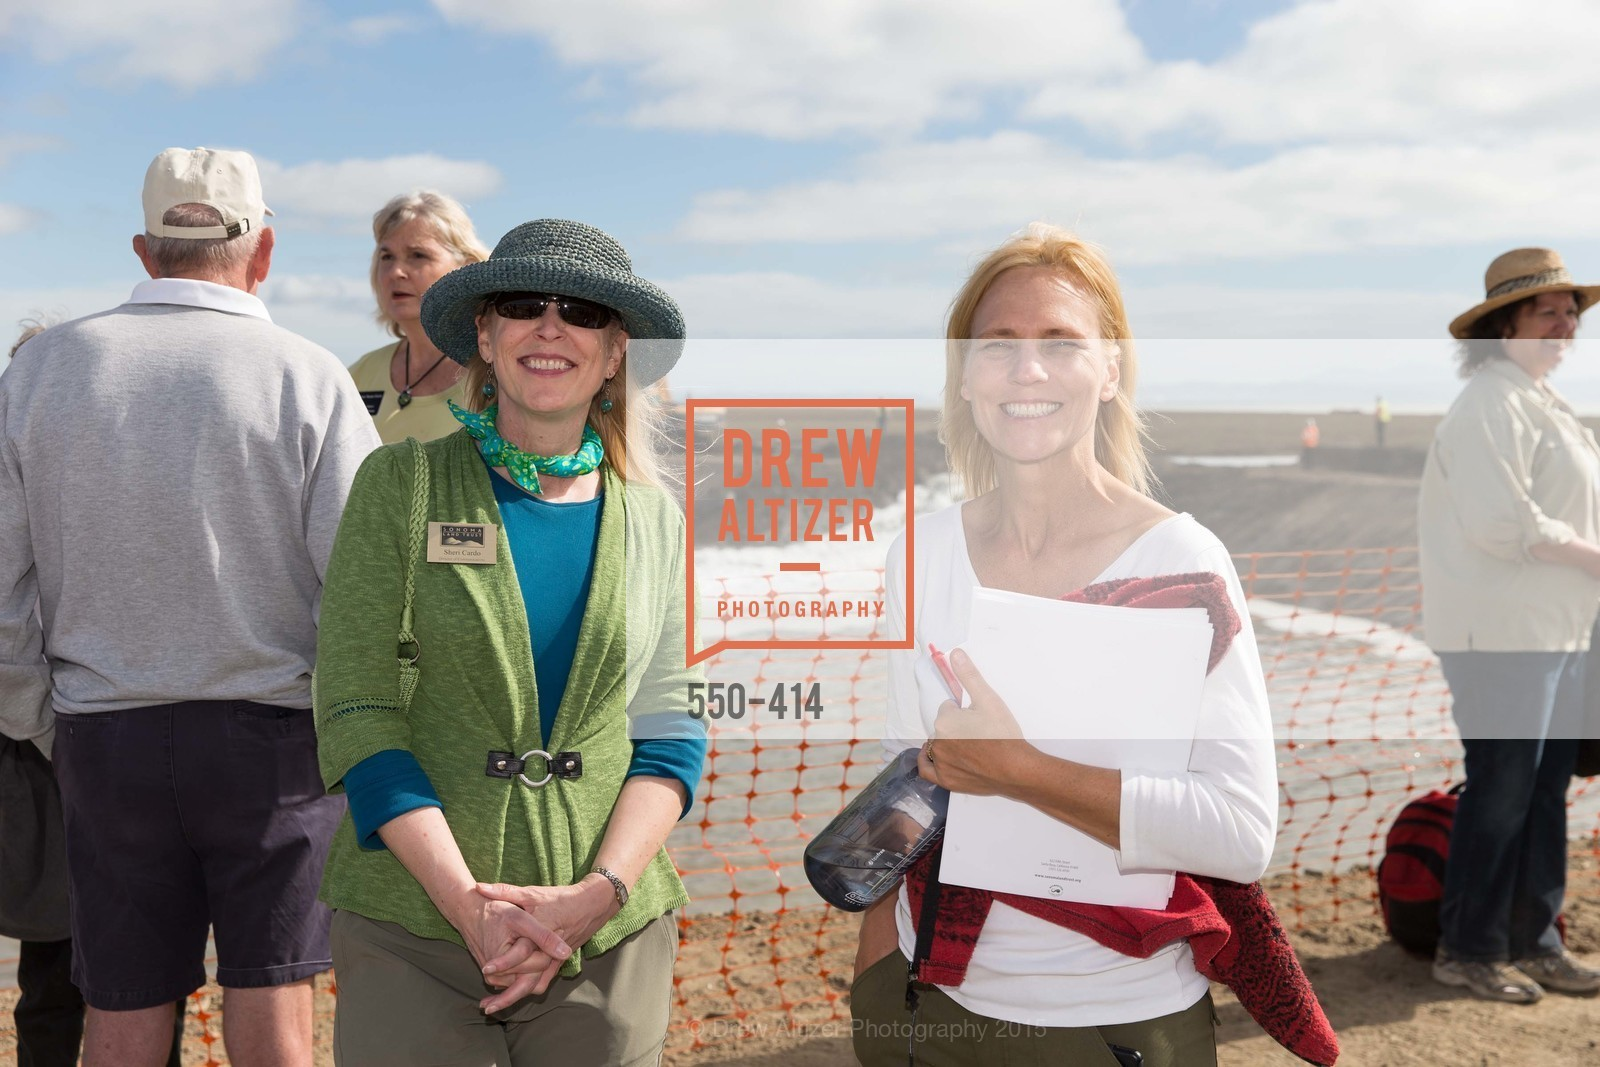 Sheri Cardo, SEA CHANGE at Sears Point with Sonoma Land Trust, Sears Point. Hwy 37 and Lakeville Hwy, October 25th, 2015